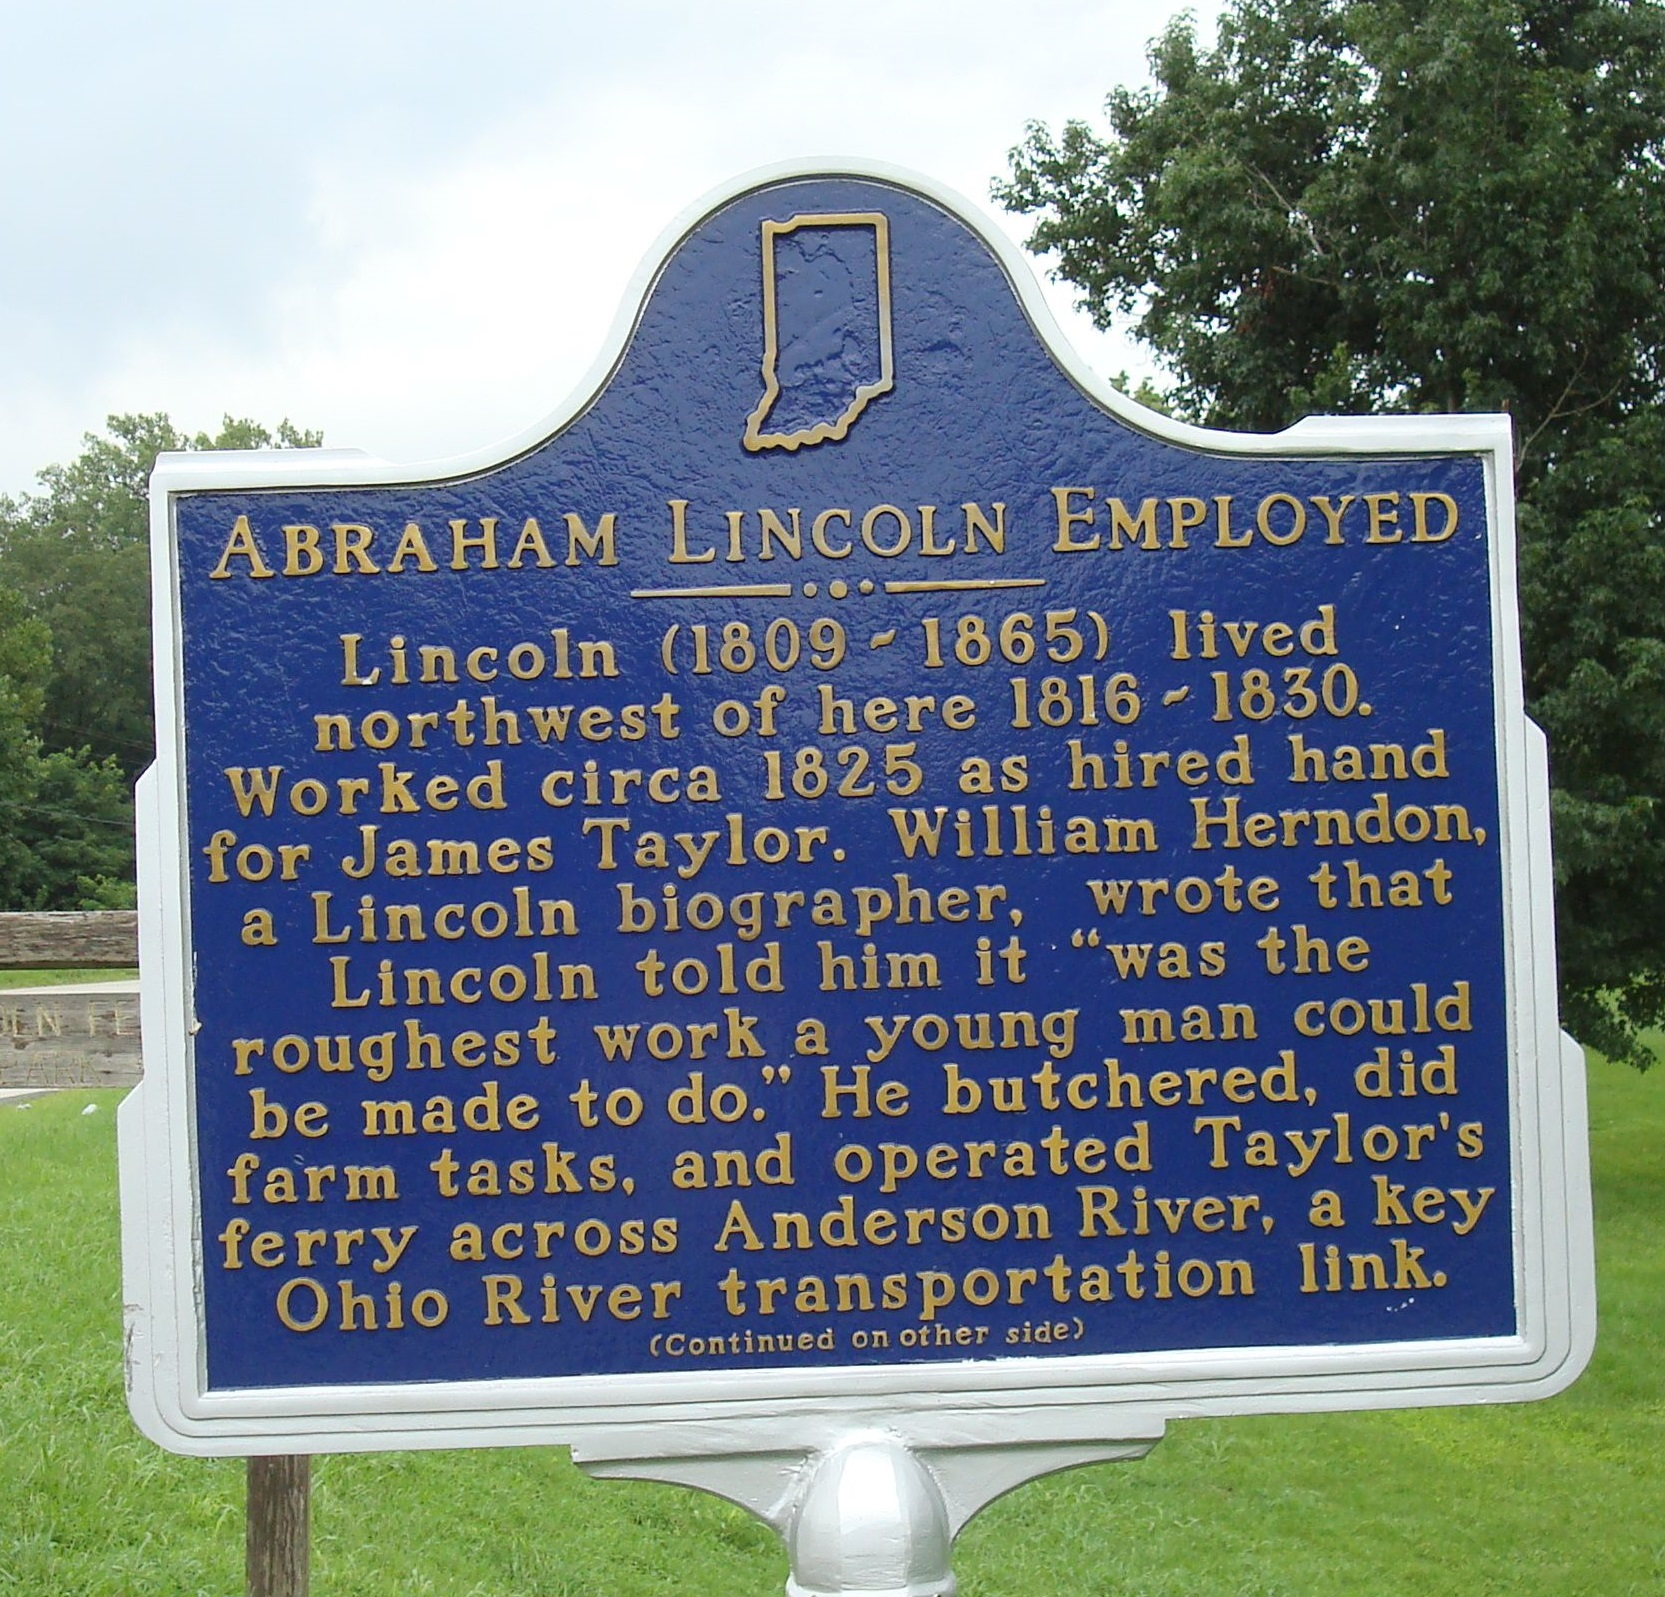 74-2001-1abrahamlincolnemployed-side1-2016